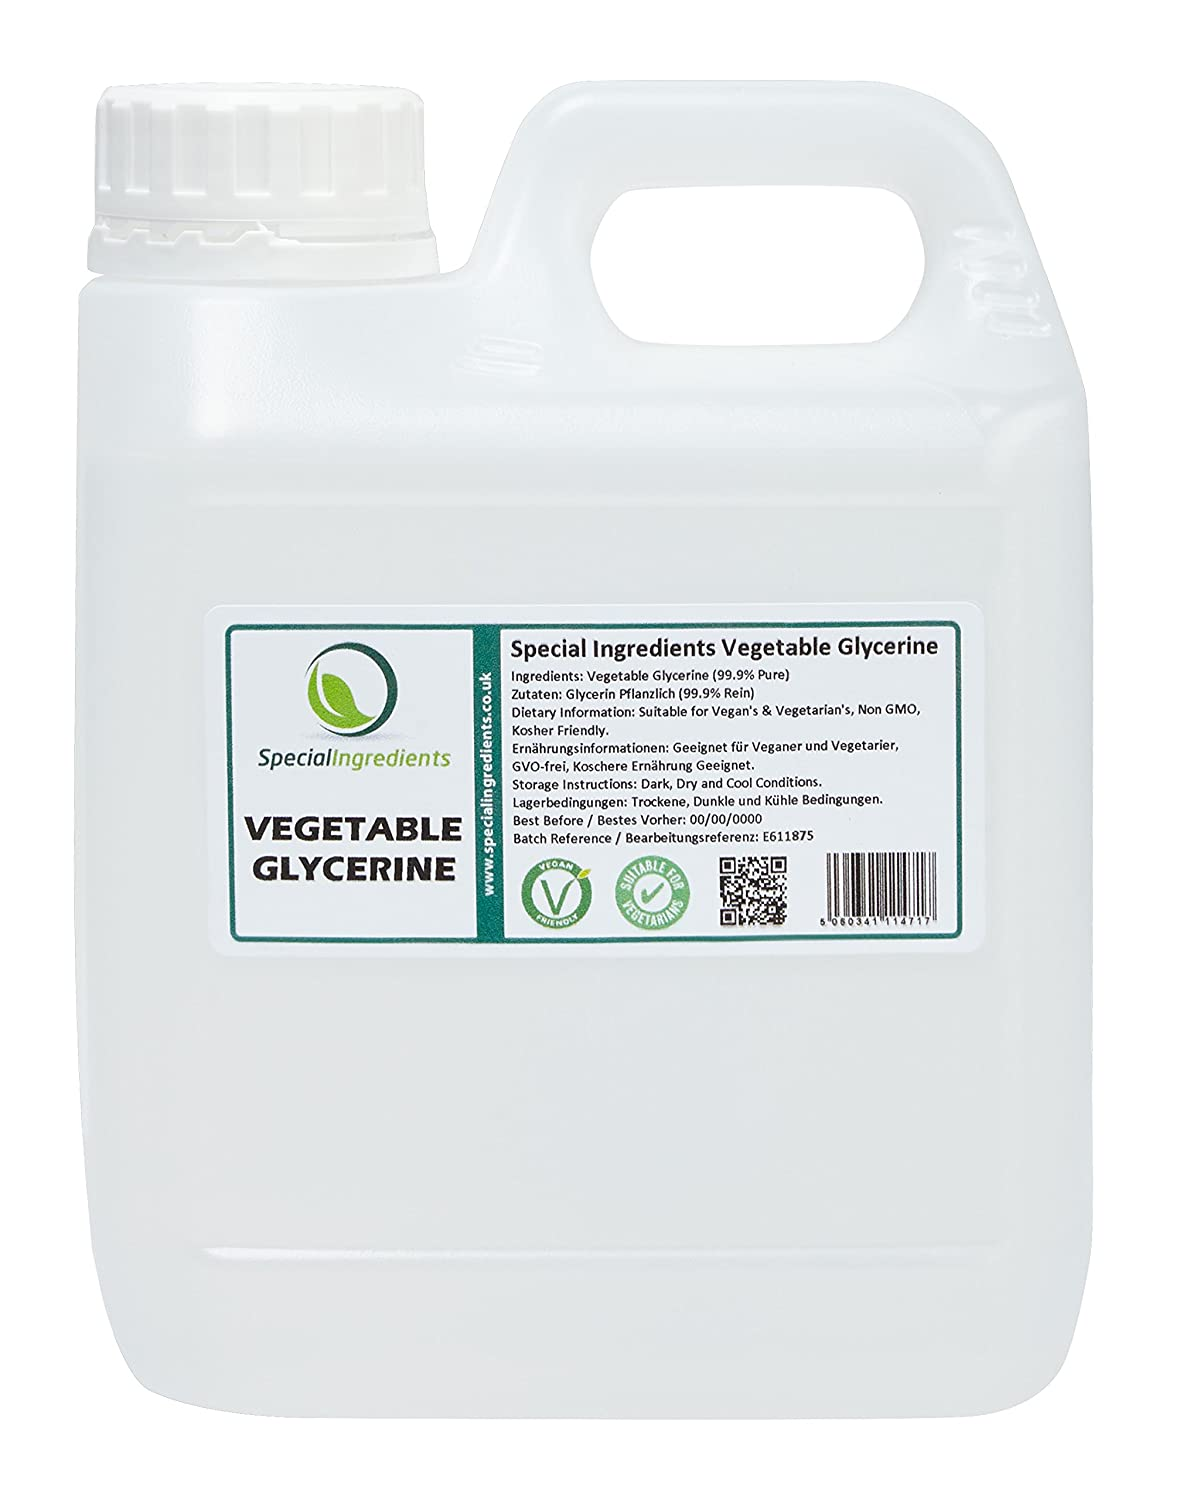 Special Ingredients Vegetable Glycerine/Glycerol 1 Litre Premium Quality  Clear Pharma Food Grade, Non GMO